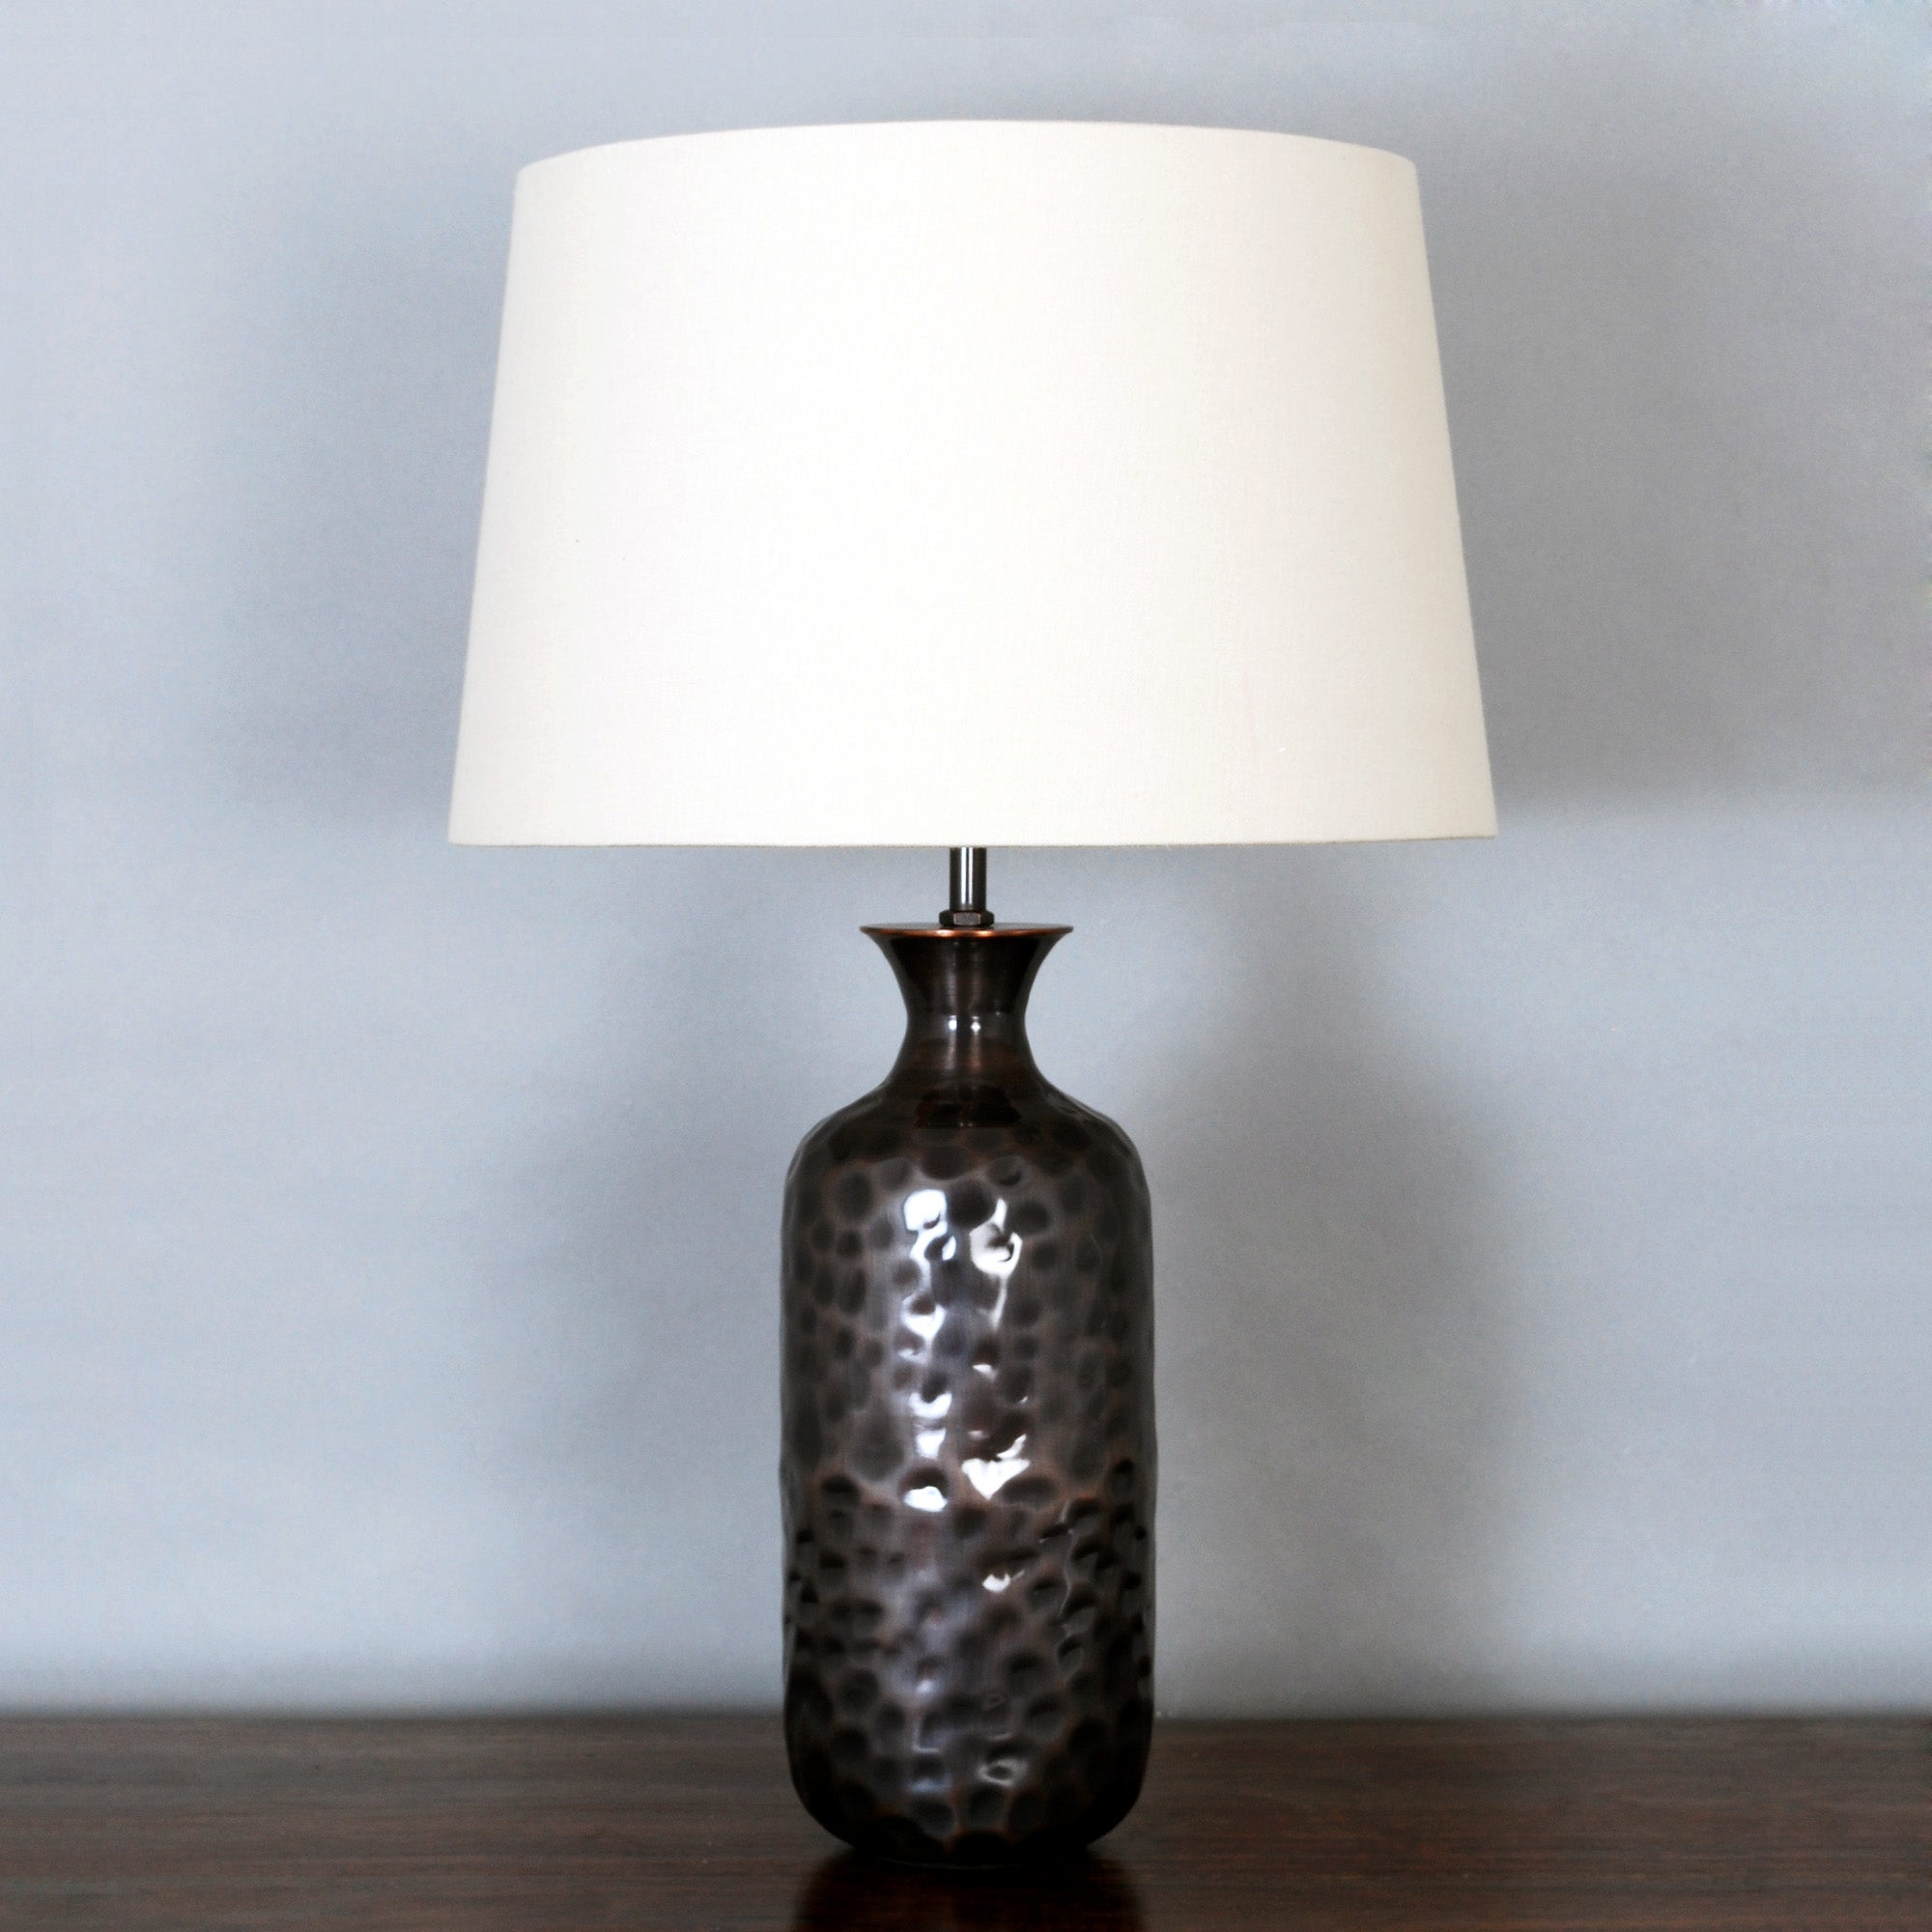 Eden Bottle Table Lamp